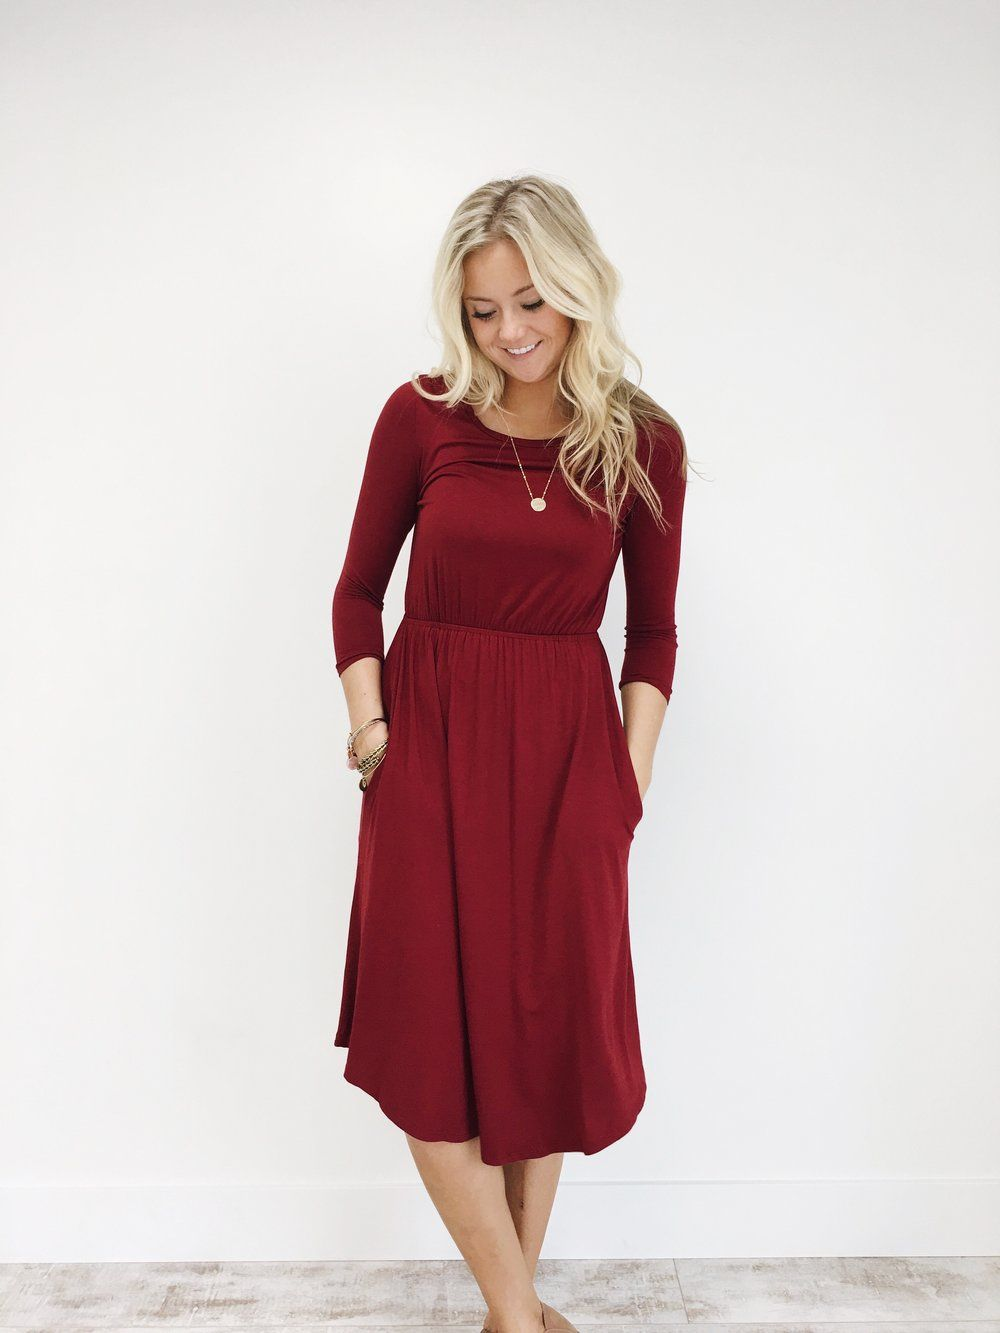 The Bethany Dress In Burgundy Roolee Dresses Pretty Outfits Midi Dress With Sleeves [ 1333 x 1000 Pixel ]